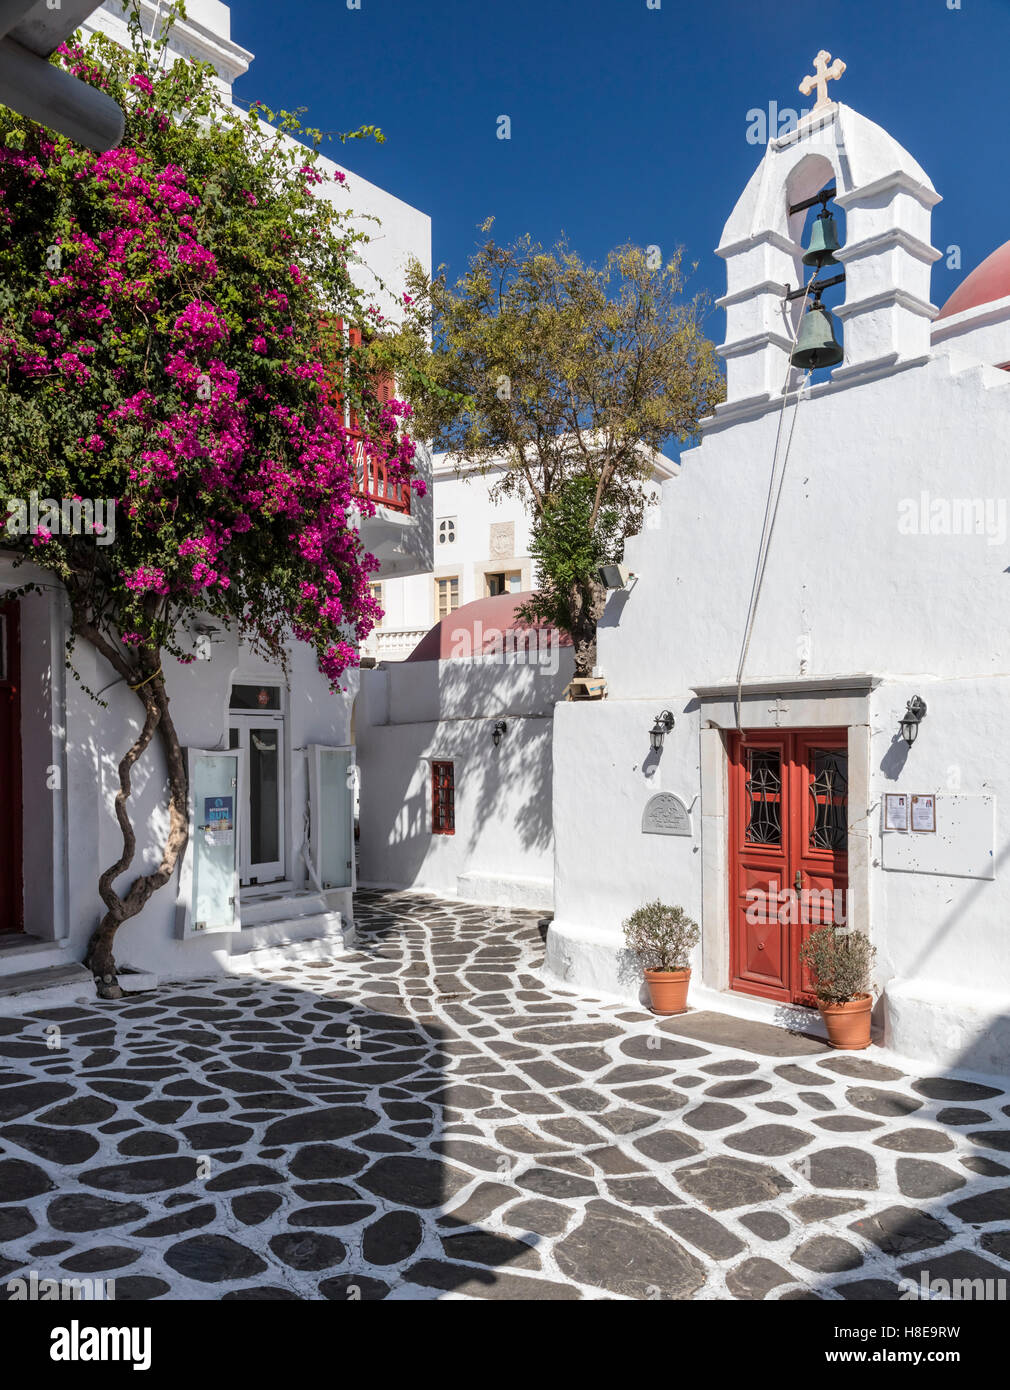 Agia Kyriaki Square in Mykonos with bougainvillea, whitewashed walls, and Greek Orthodox church. Cyclades islands, - Stock Image